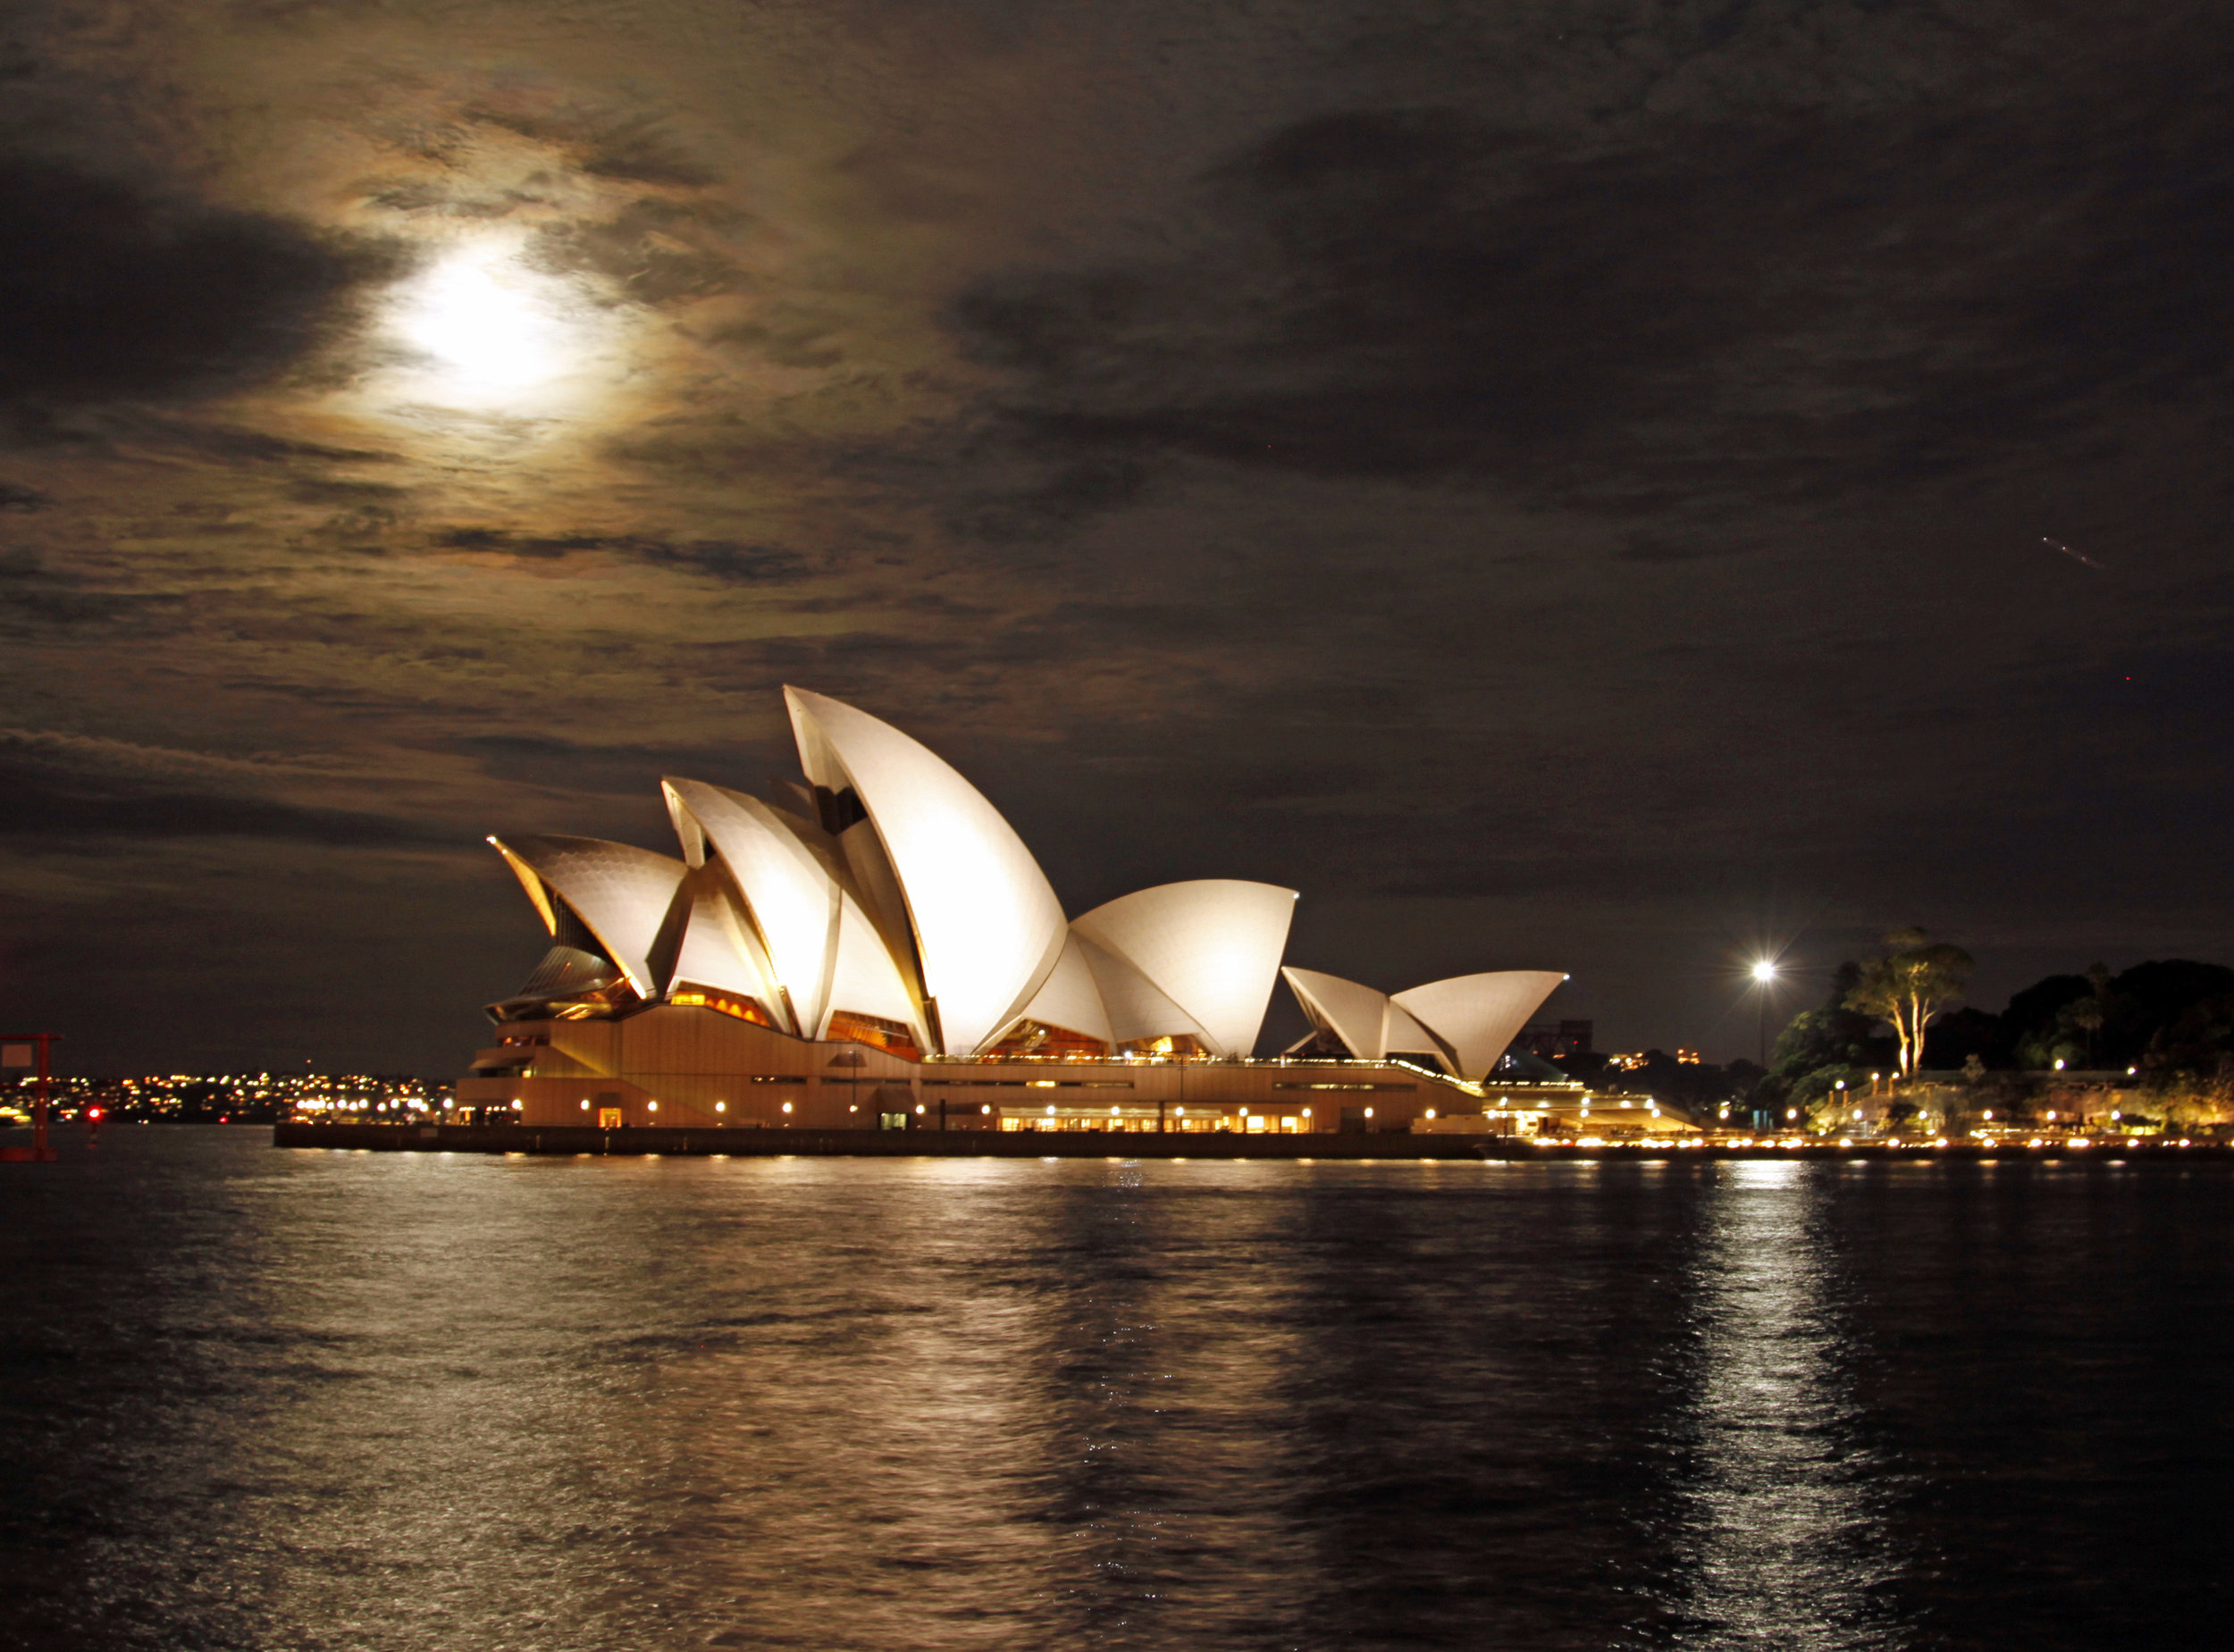 """Australia Vacation Inspiration - 11 DaysPrivate charter flights provide travel throughout AustraliaChampagne and canapés watching the spectacular setting desert sun bathe mystical Uluru""""Foodie Tour"""" in Sydney featuring visits and tastings at some of the city's local eateries and culinary landmarksFull-day swimming, snorkeling and marine life exploring on an eco-cruise to Agincourt Reef in the Outer Great Barrier ReefWorld Heritage Rainforest with Skyrail Rainforest CablewayVisit to a crocodile farmOvernight stay in the Outback with daytime exploration of Uluru (Ayers Rock)Private luncheon cruise of stunning Sydney Harbour"""